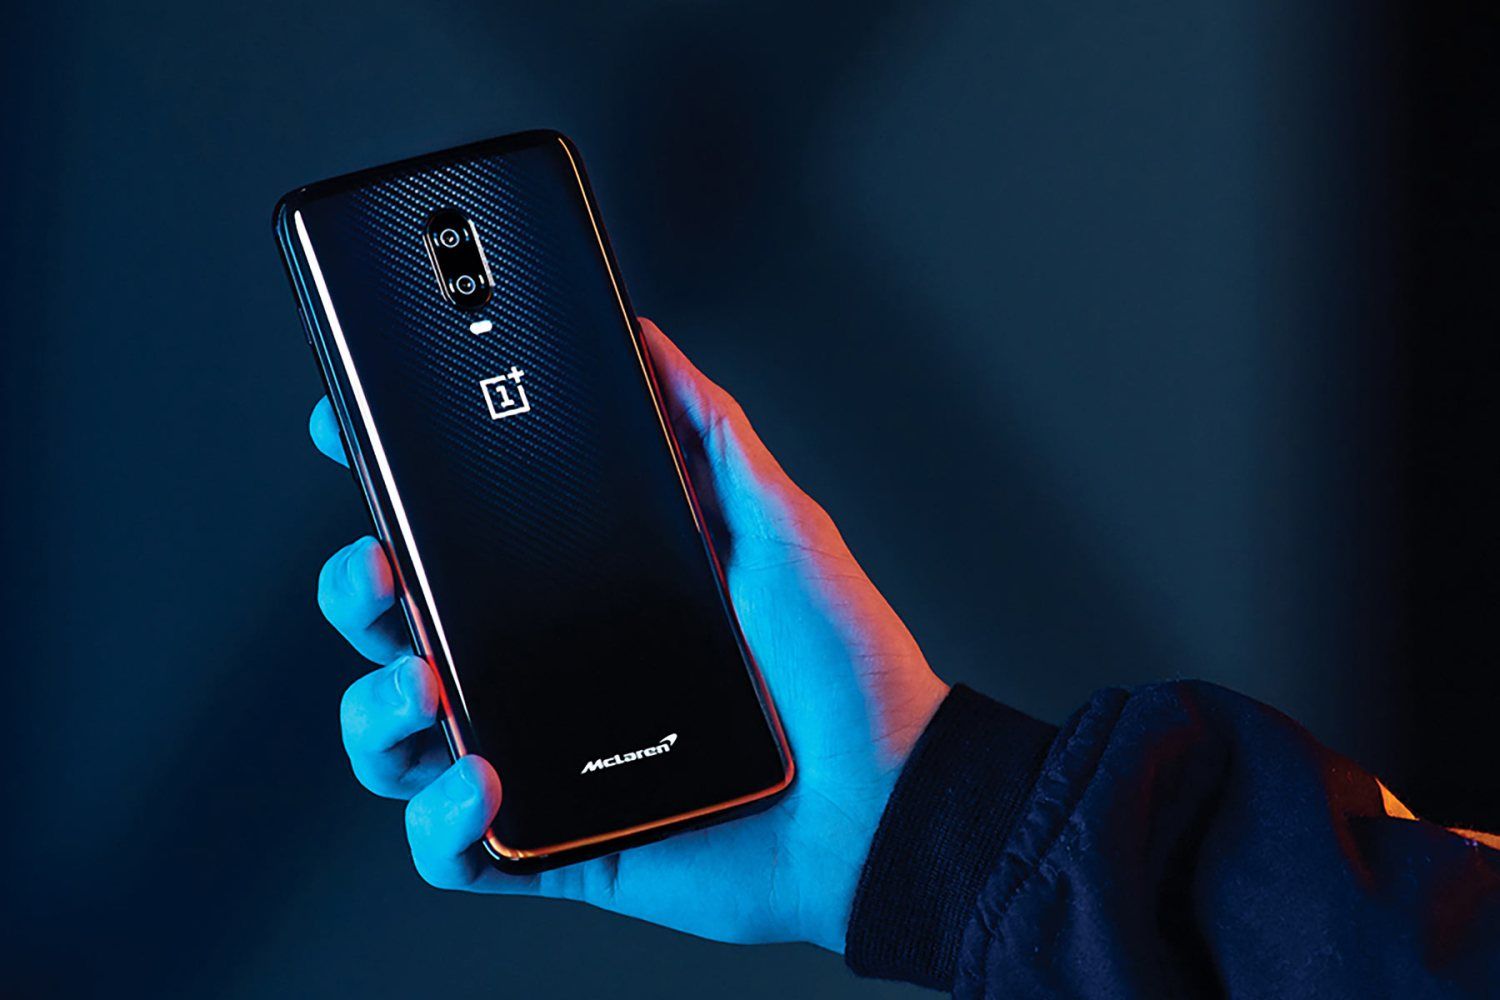 mclaren launches special edition oneplus 6t smartphone. Black Bedroom Furniture Sets. Home Design Ideas